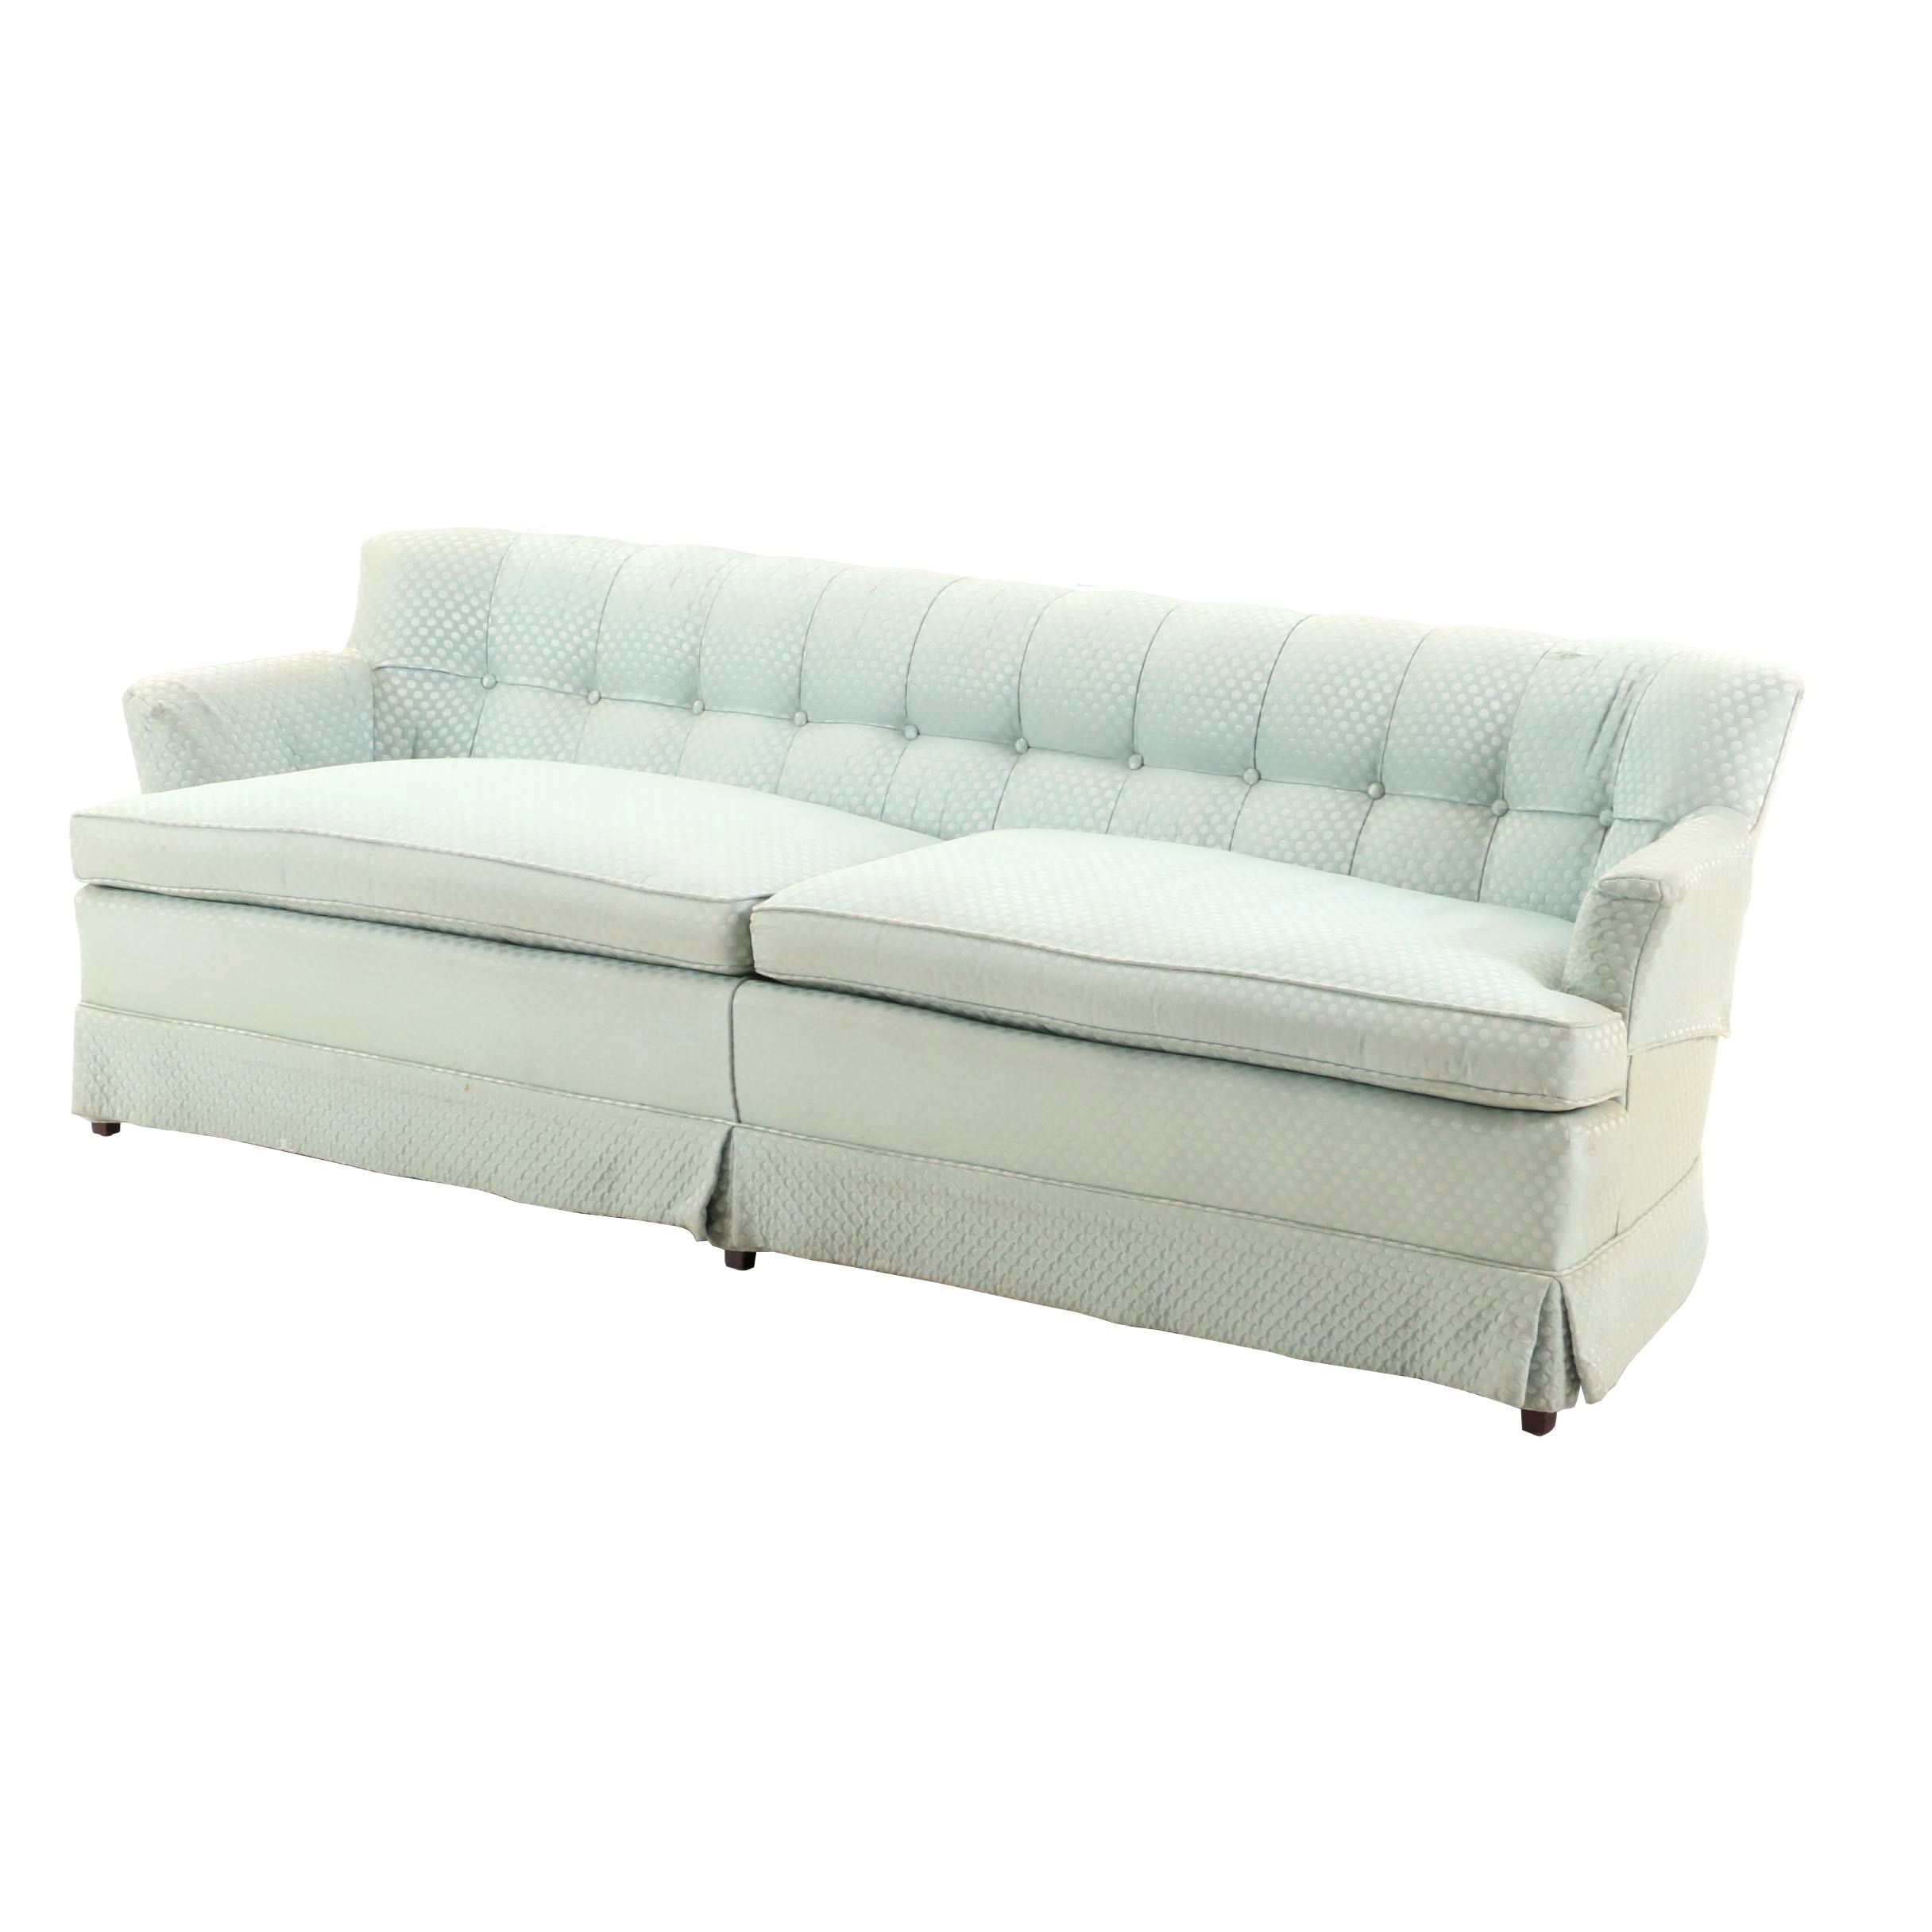 Pale Blue Upholstered Sofa, Late 20th Century